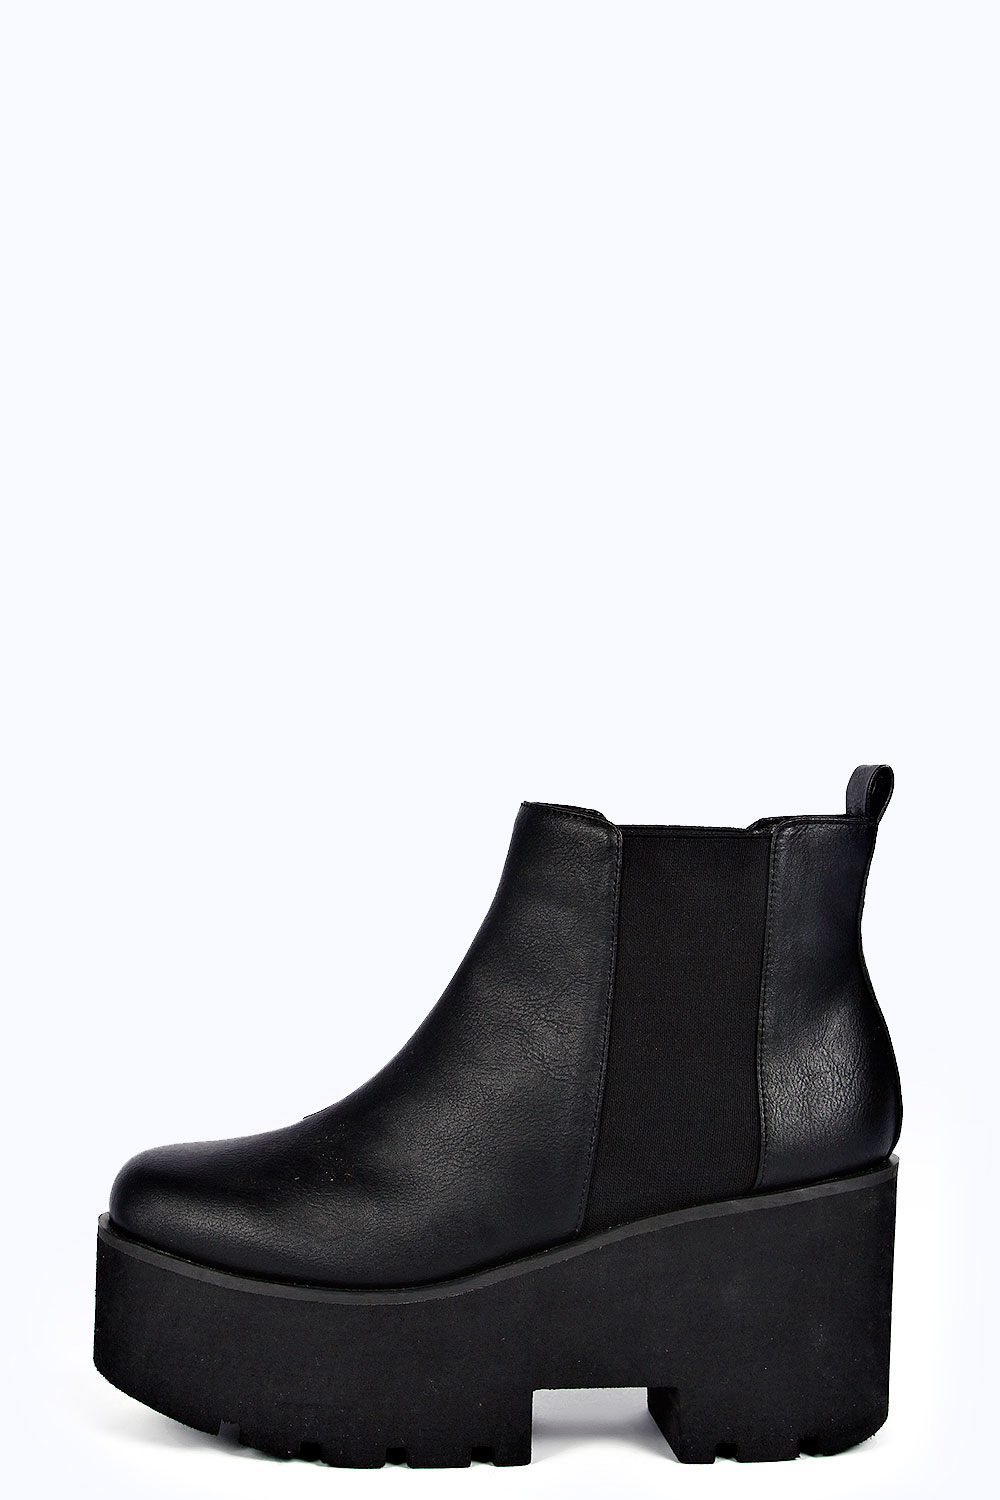 Zina elastic insert pull on cleated ankle boot